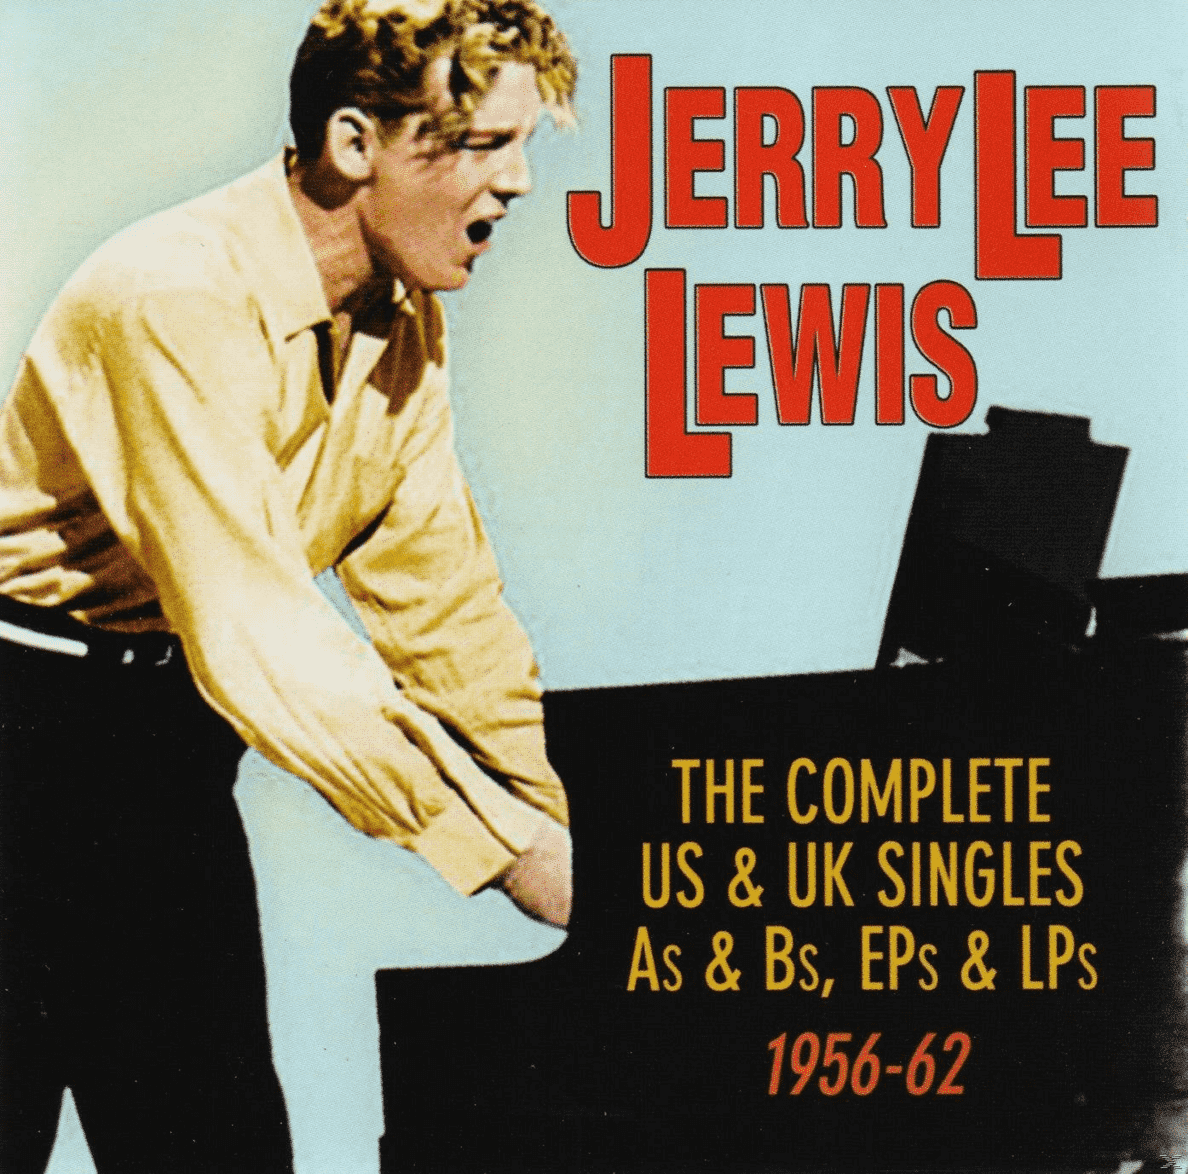 The Complete Us & Uk Singles As&Bs, Eps&Lps 1956-62 Jerry Lee Lewis auf CD